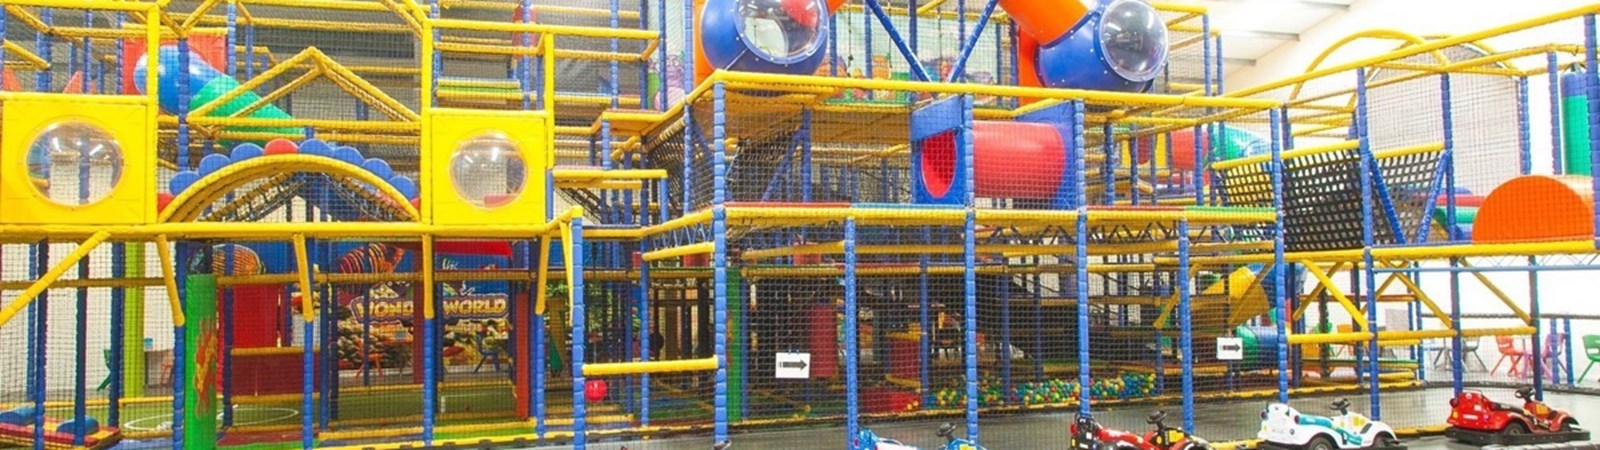 Childrens Soft Play Centres for sale